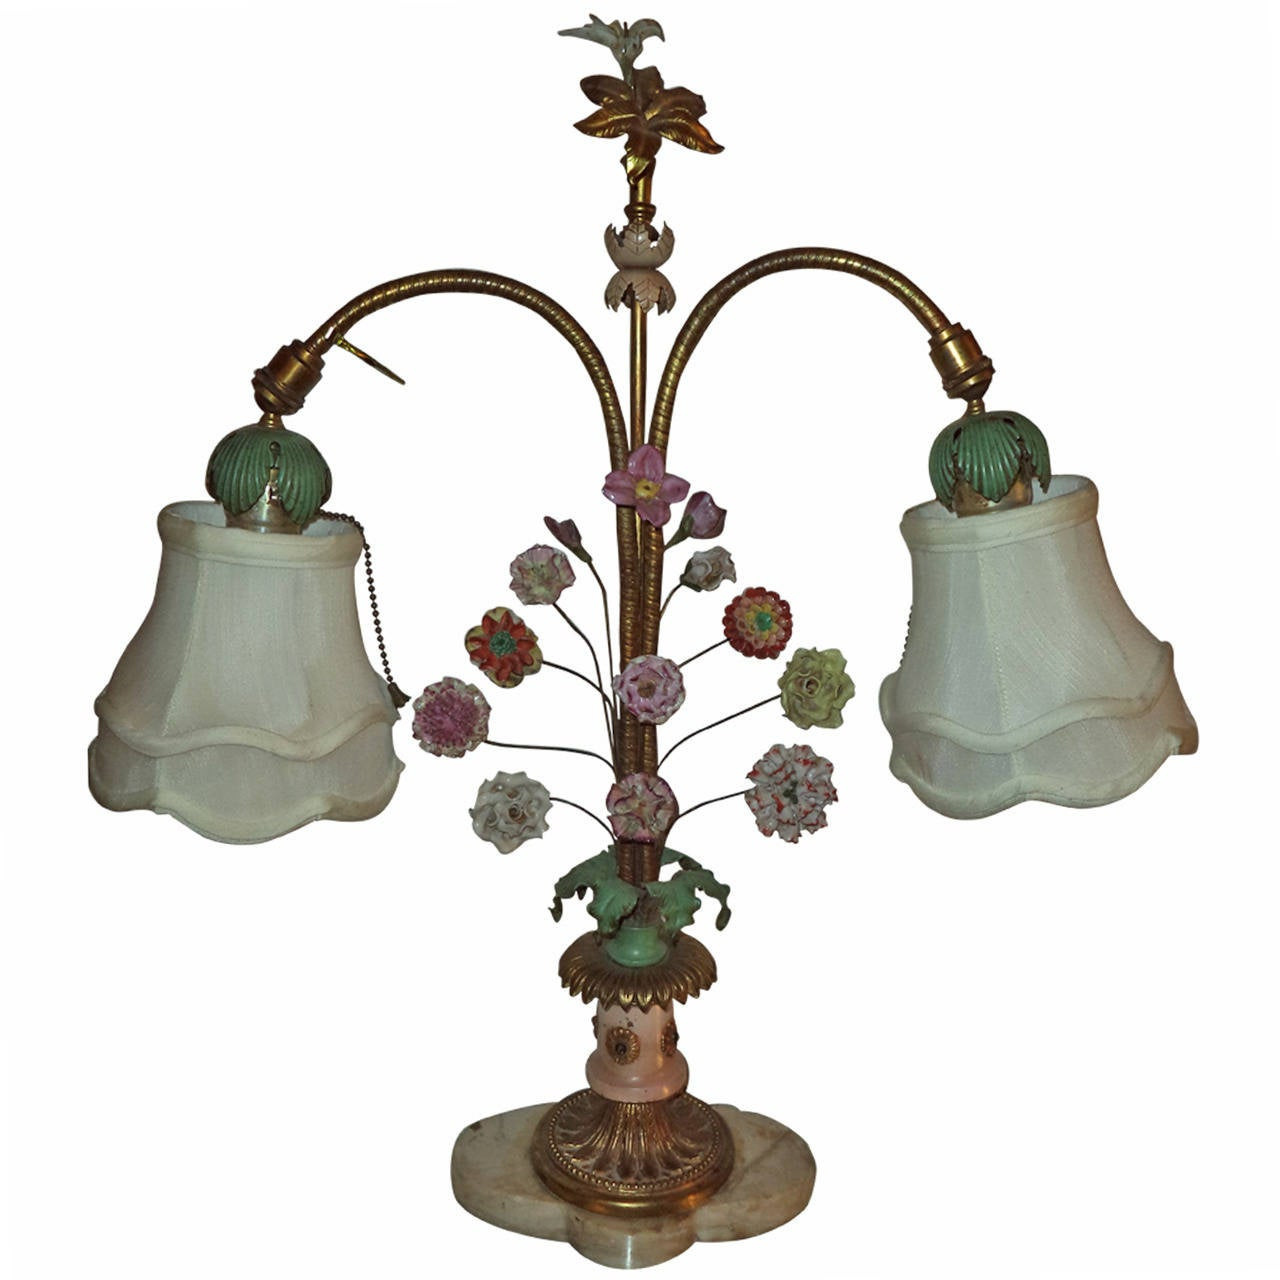 Floral porcelain table lamp for sale at 1stdibs floral porcelain table lamp for sale aloadofball Image collections